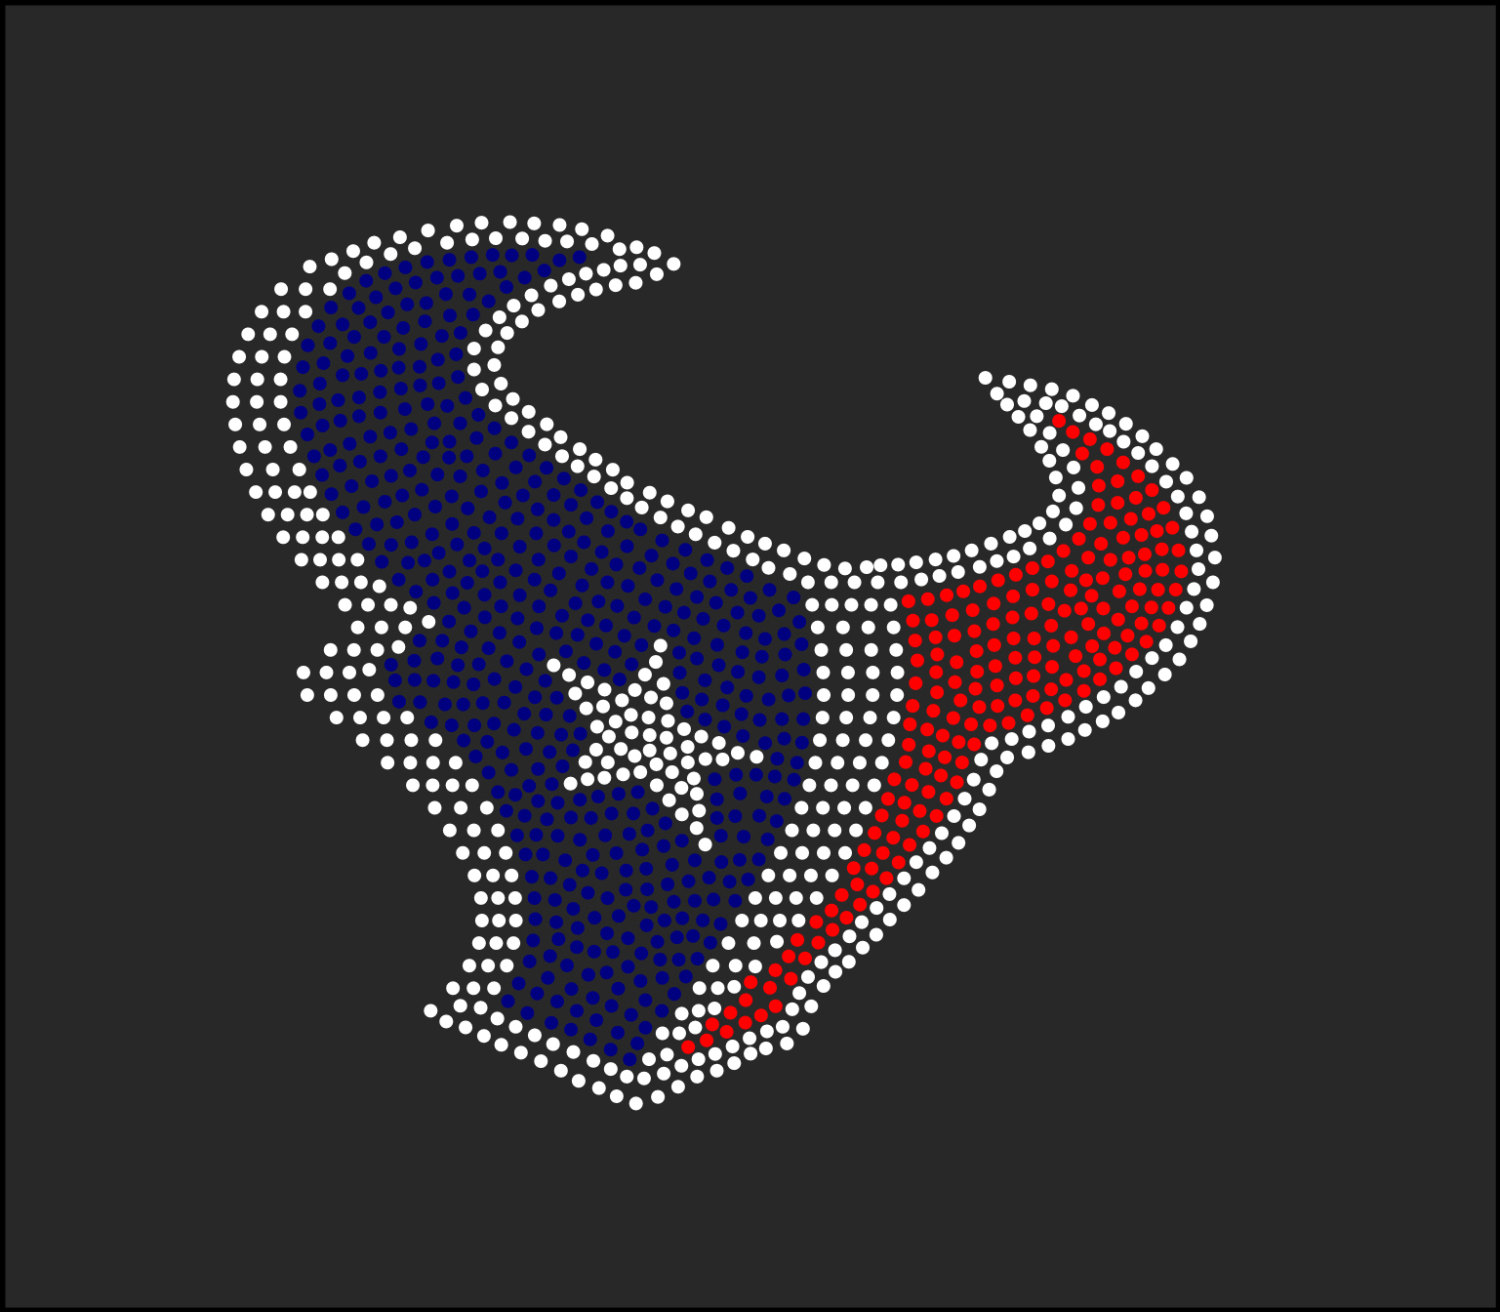 ... Killjoy Rhinestone Designs On Zibbet Houston Texans Logo History  Houston. Fullsize Of Houston Texans Logo ... a0a90ab0c